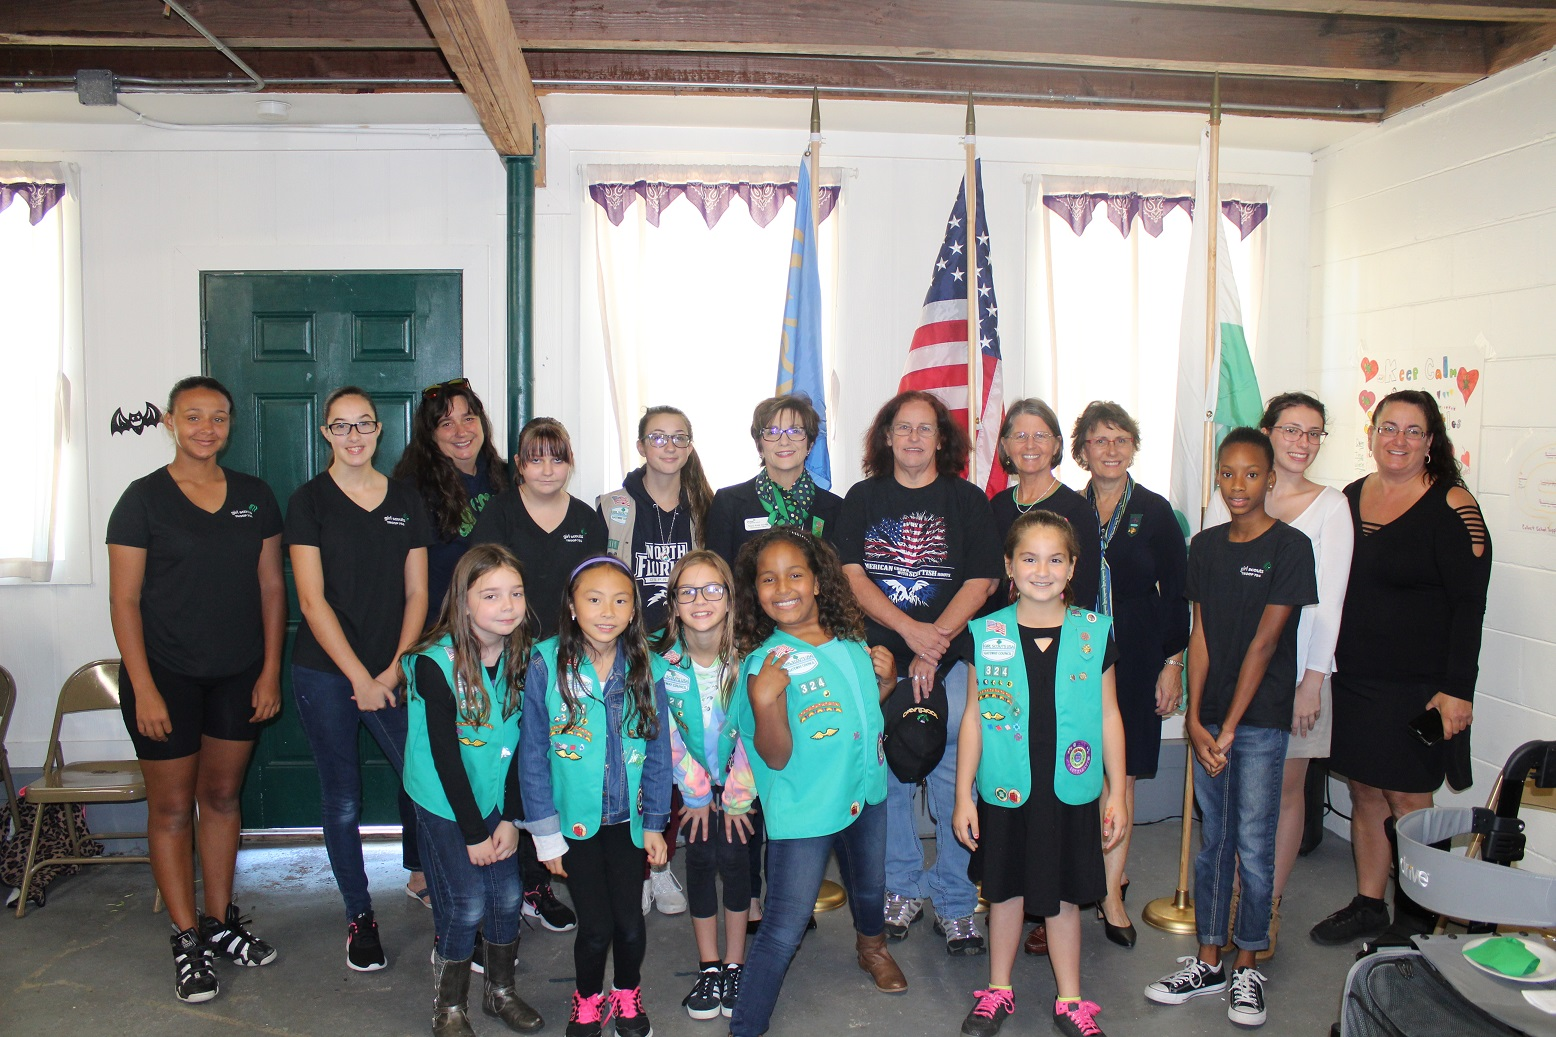 Girl scouts of gateway council turns over beaches little house to city of neptune beach - The scouts tiny house ...